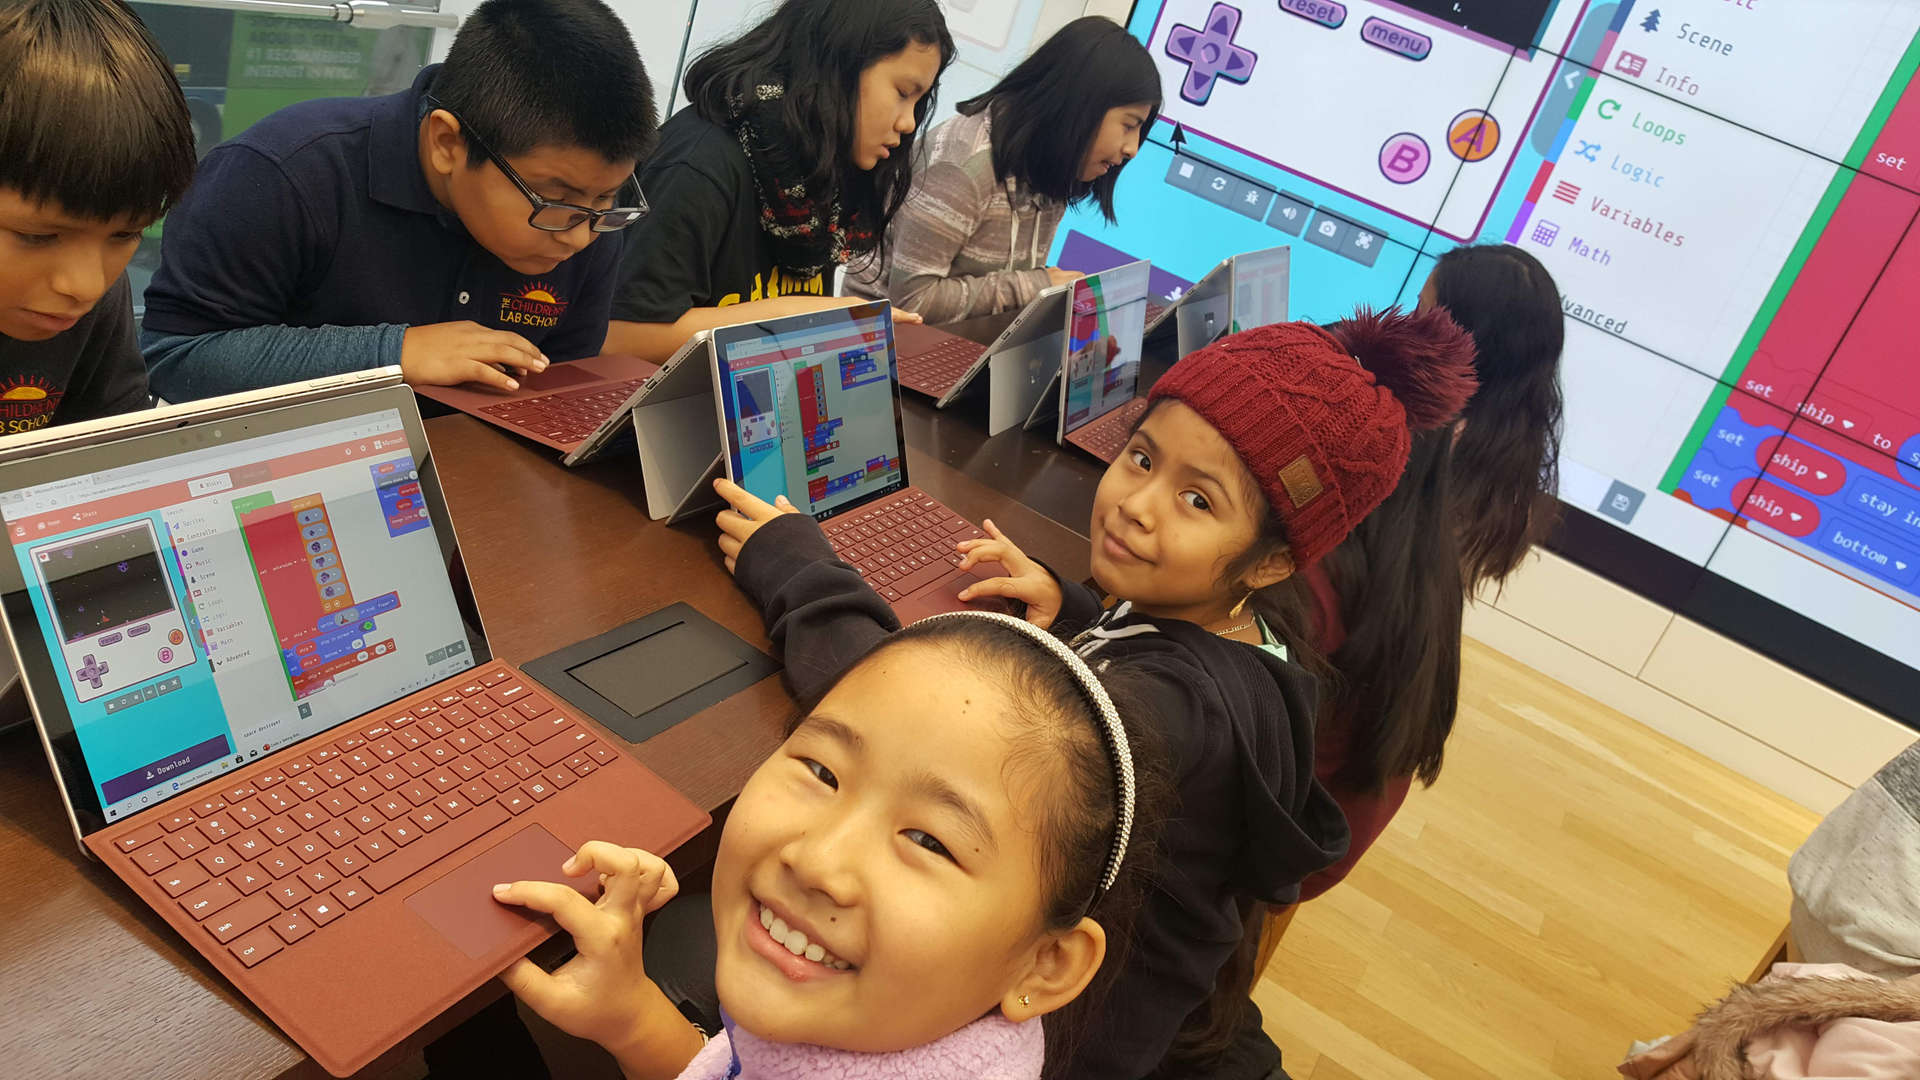 Students coding on tablets